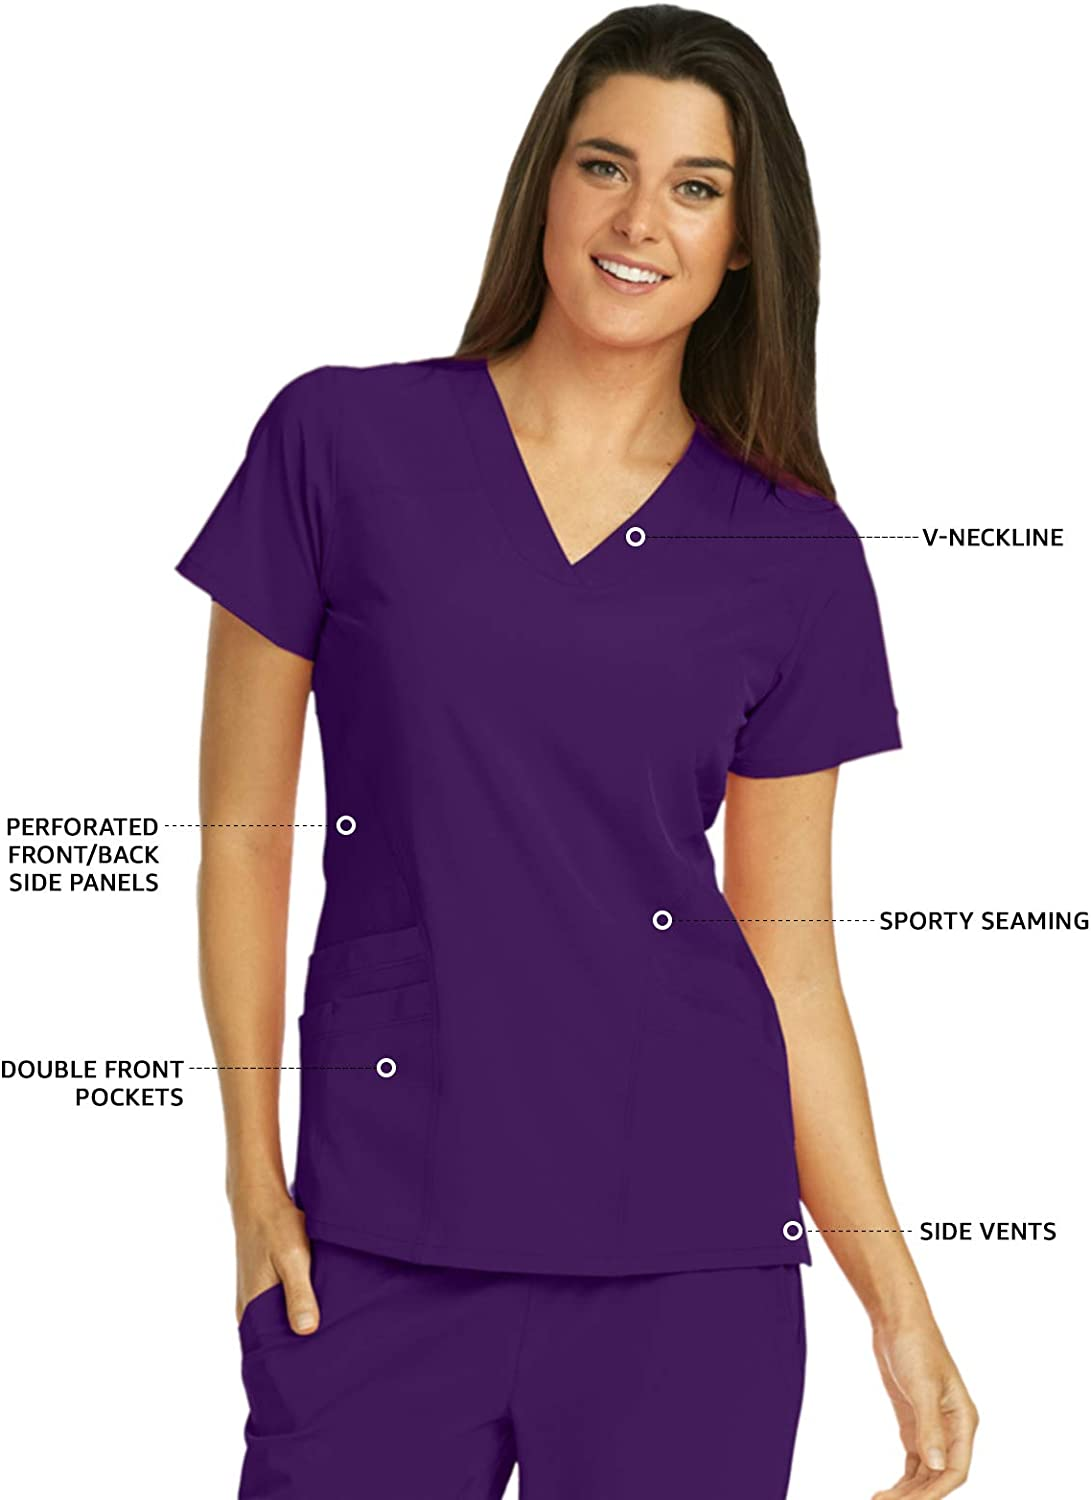 Barco ONE 5-Pocket V-Neck Top for Women 4-Way Stretch Medical Scrub Top